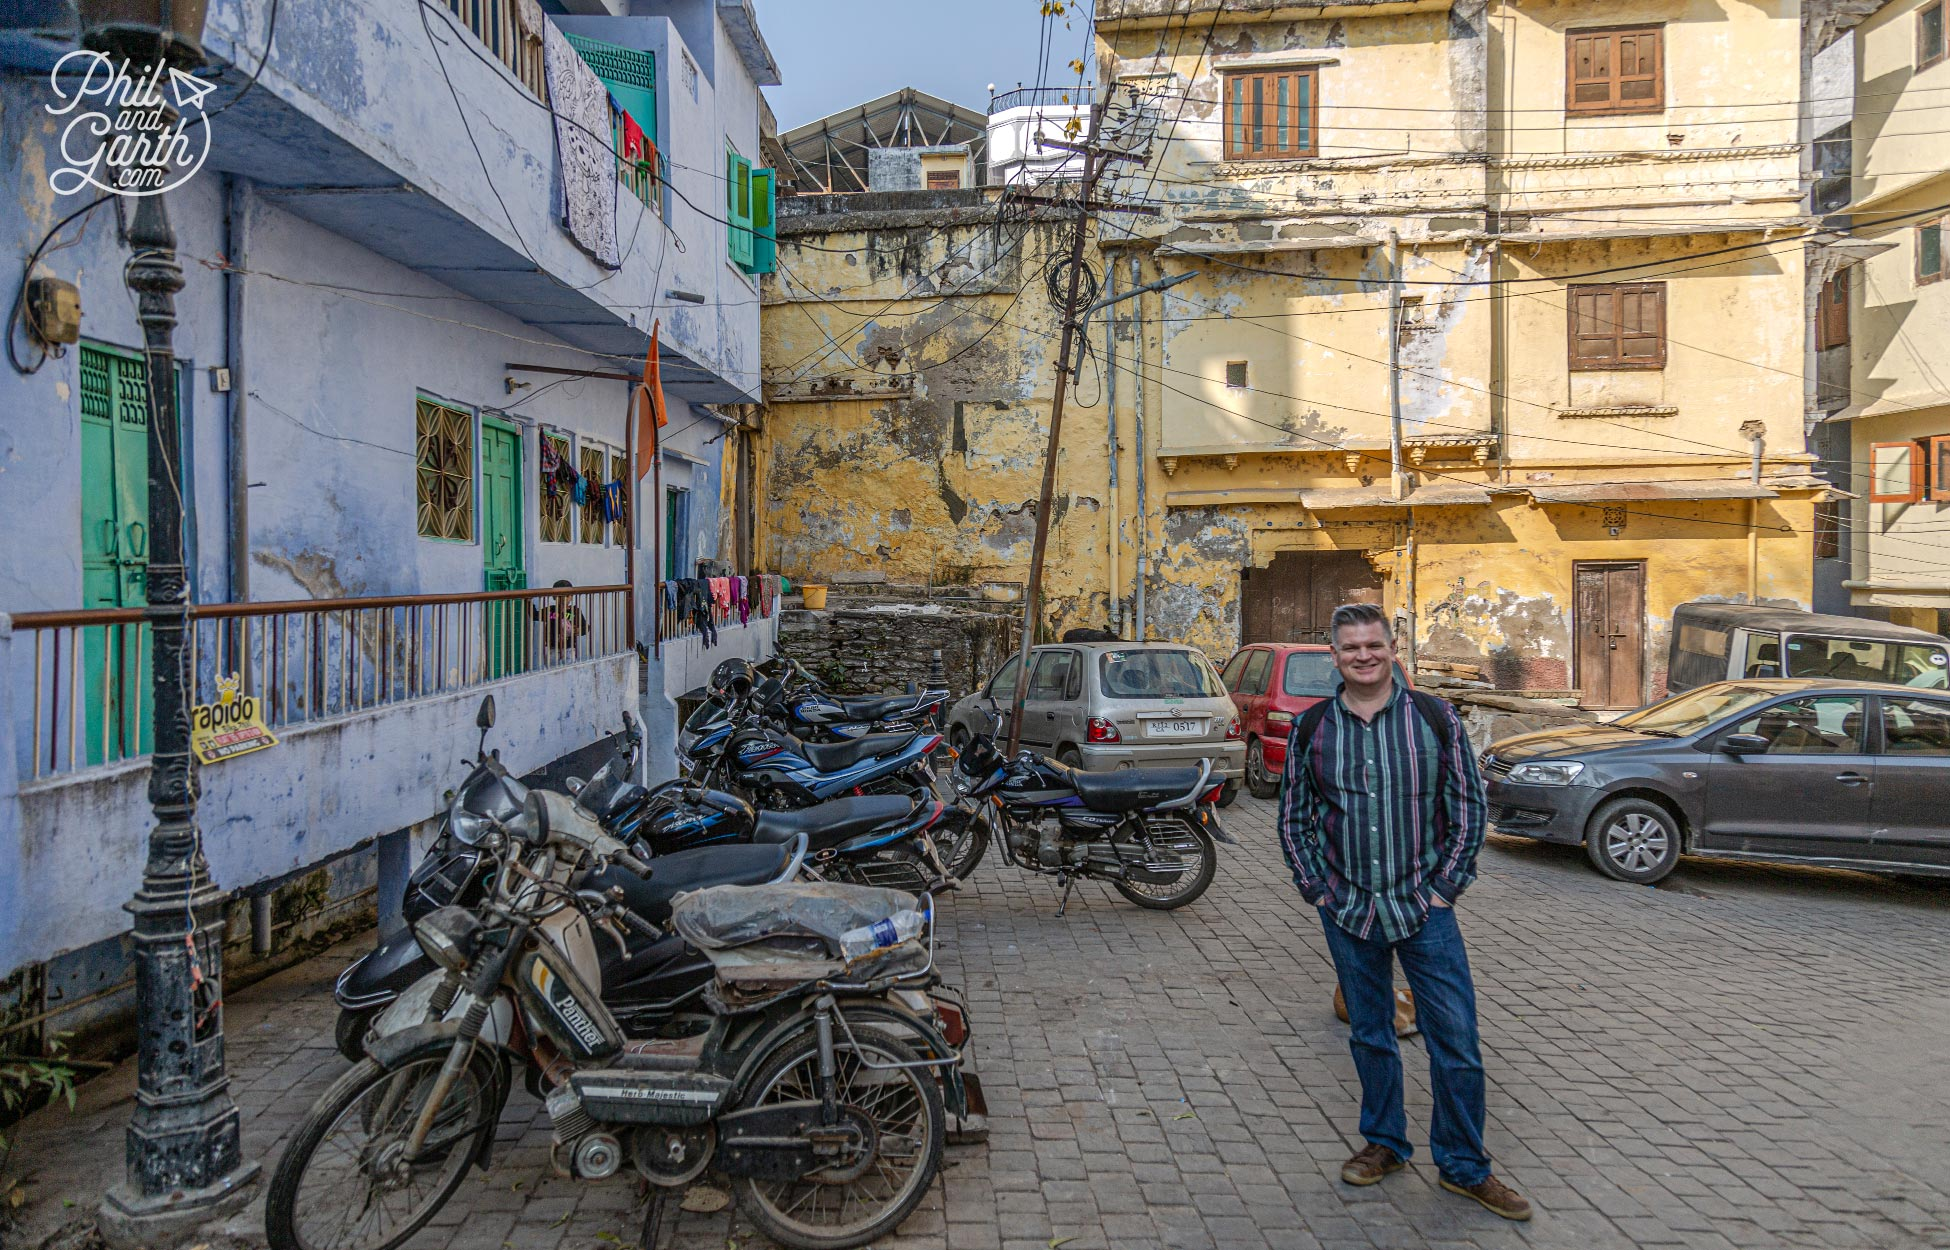 Wandering around the back streets of Udaipur